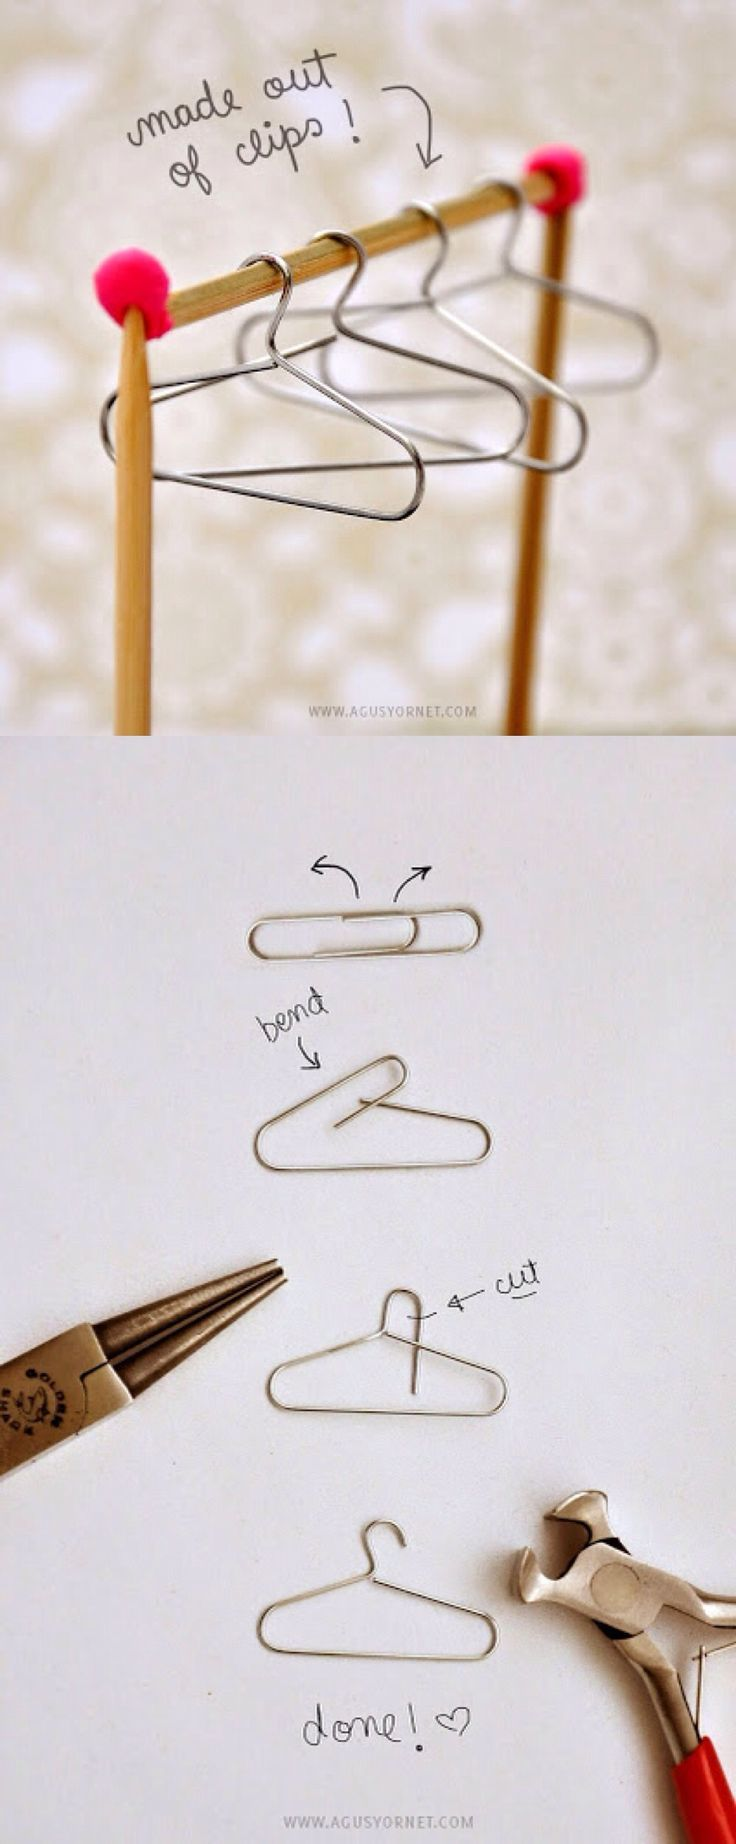 Turn plain paperclips into adorable mini hangers with this easy-to-follow tutorial from Agus Yornet.  Perfect for doll clothes, decorations, on greeting cards, in the playroom, or craft fair displays.: